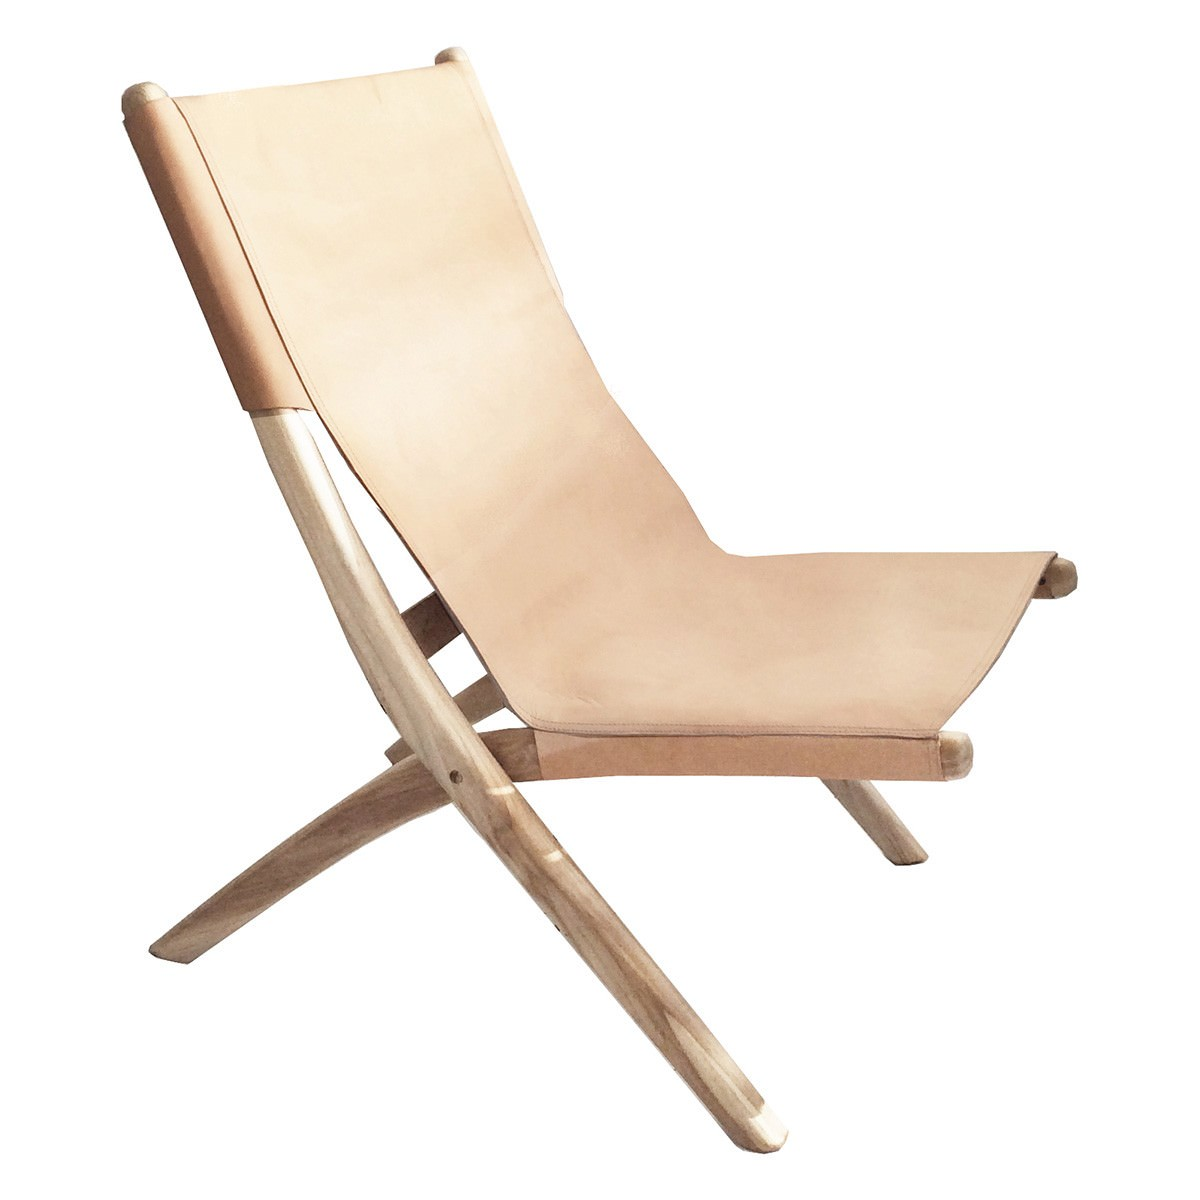 Folding Lounge Chair Favela Leather Teak Folding Lounge Chair Nude